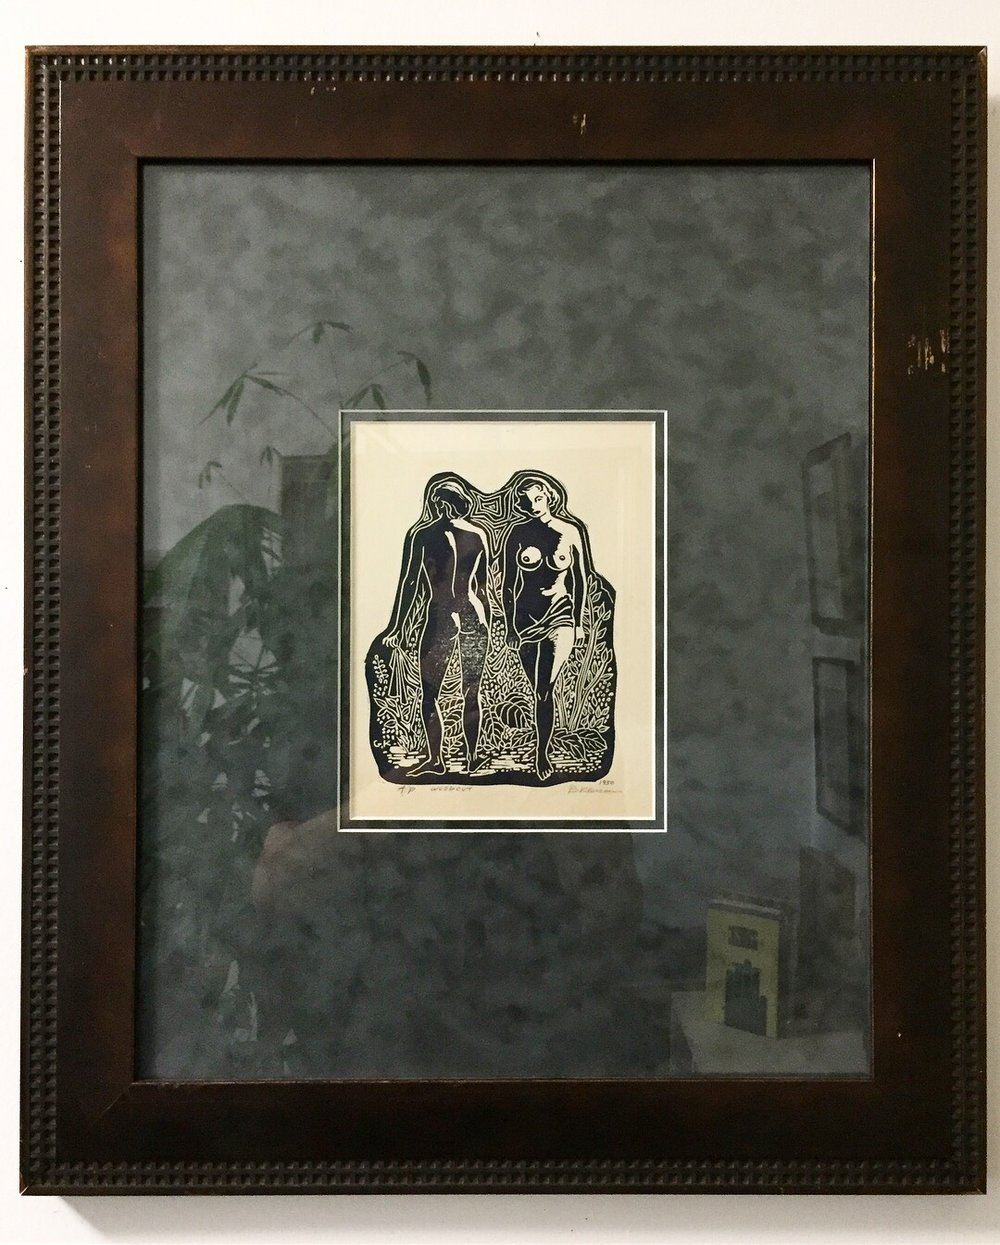 """Gijsbertus (Bert) Kloezeman - Woodcut1950a/pSigned Indistinctly6.5""""x 8.5""""plate size (20""""x24.5"""" framed) .Good condition with minor frame scuffs.$175.00SOLD"""